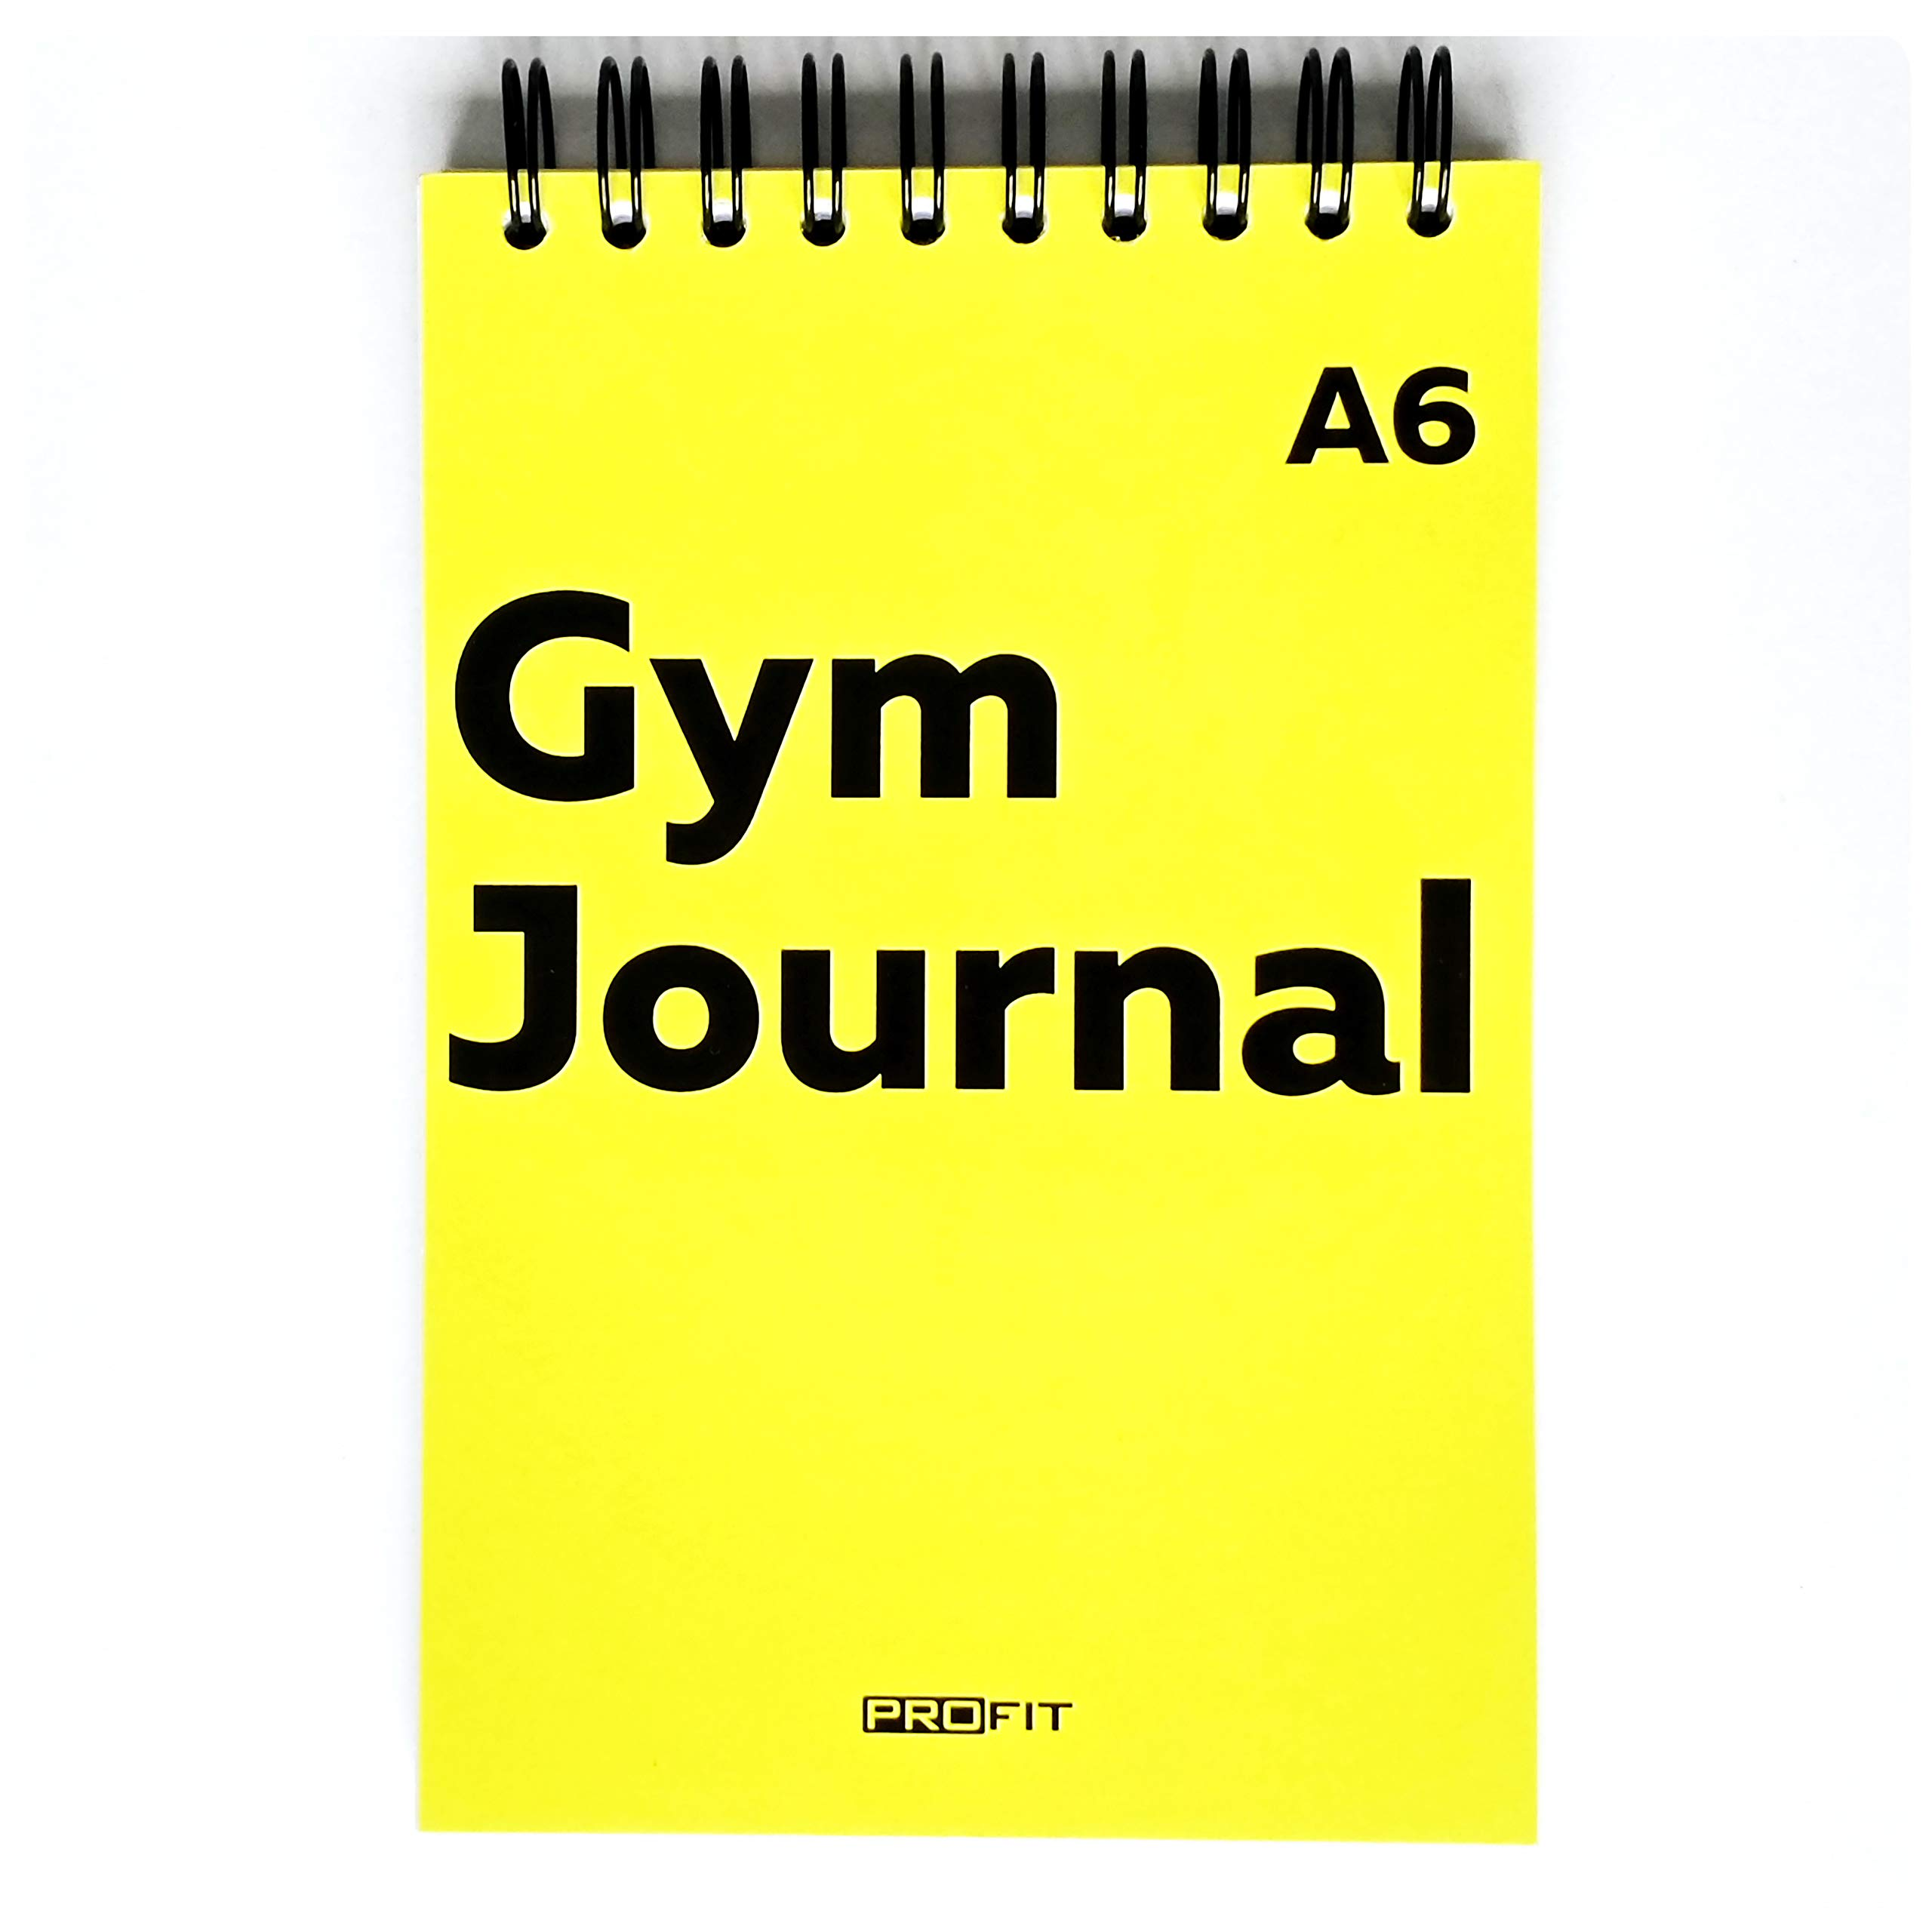 Gym Journal by Profit – 128 Workouts, A6 (4 x 6 inches), 140 Pages, Wire-Bound - Exercise Log Book Designed by Professionals to Get Things Done – Easy to Use Fitness Planner